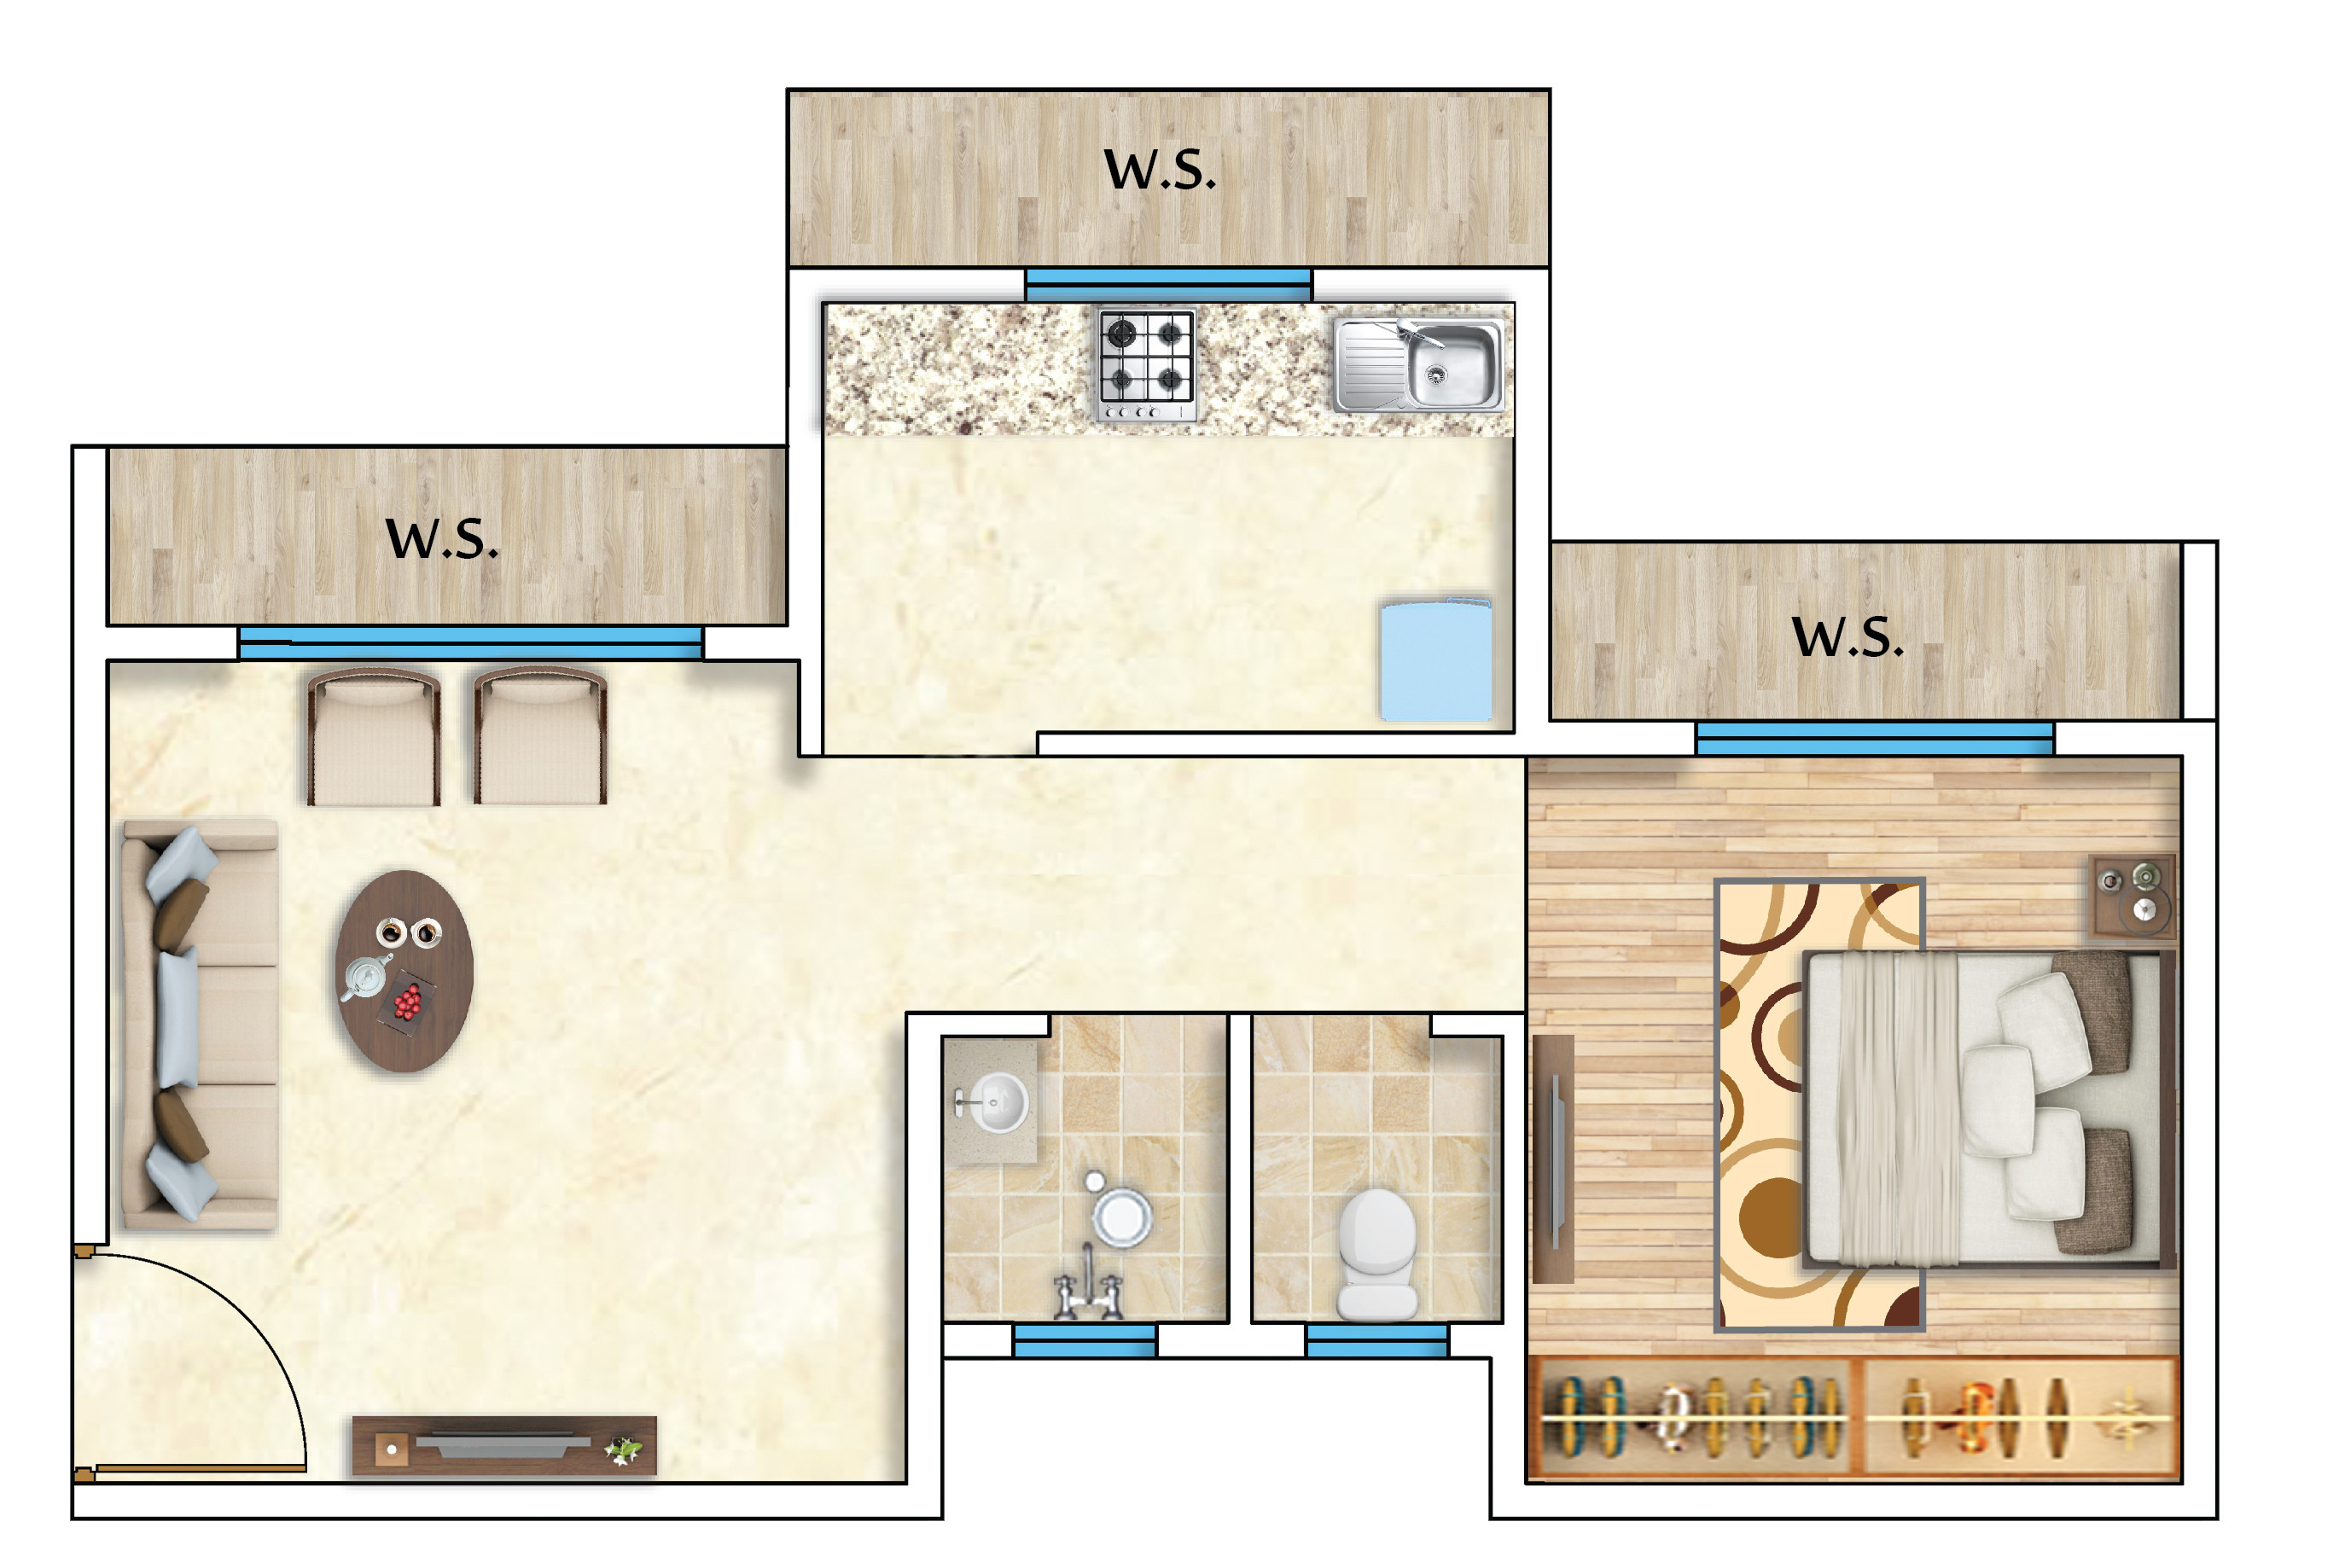 1,2 and 3 BHK Flats for sale in Neelkanth Vihar, New Panvel